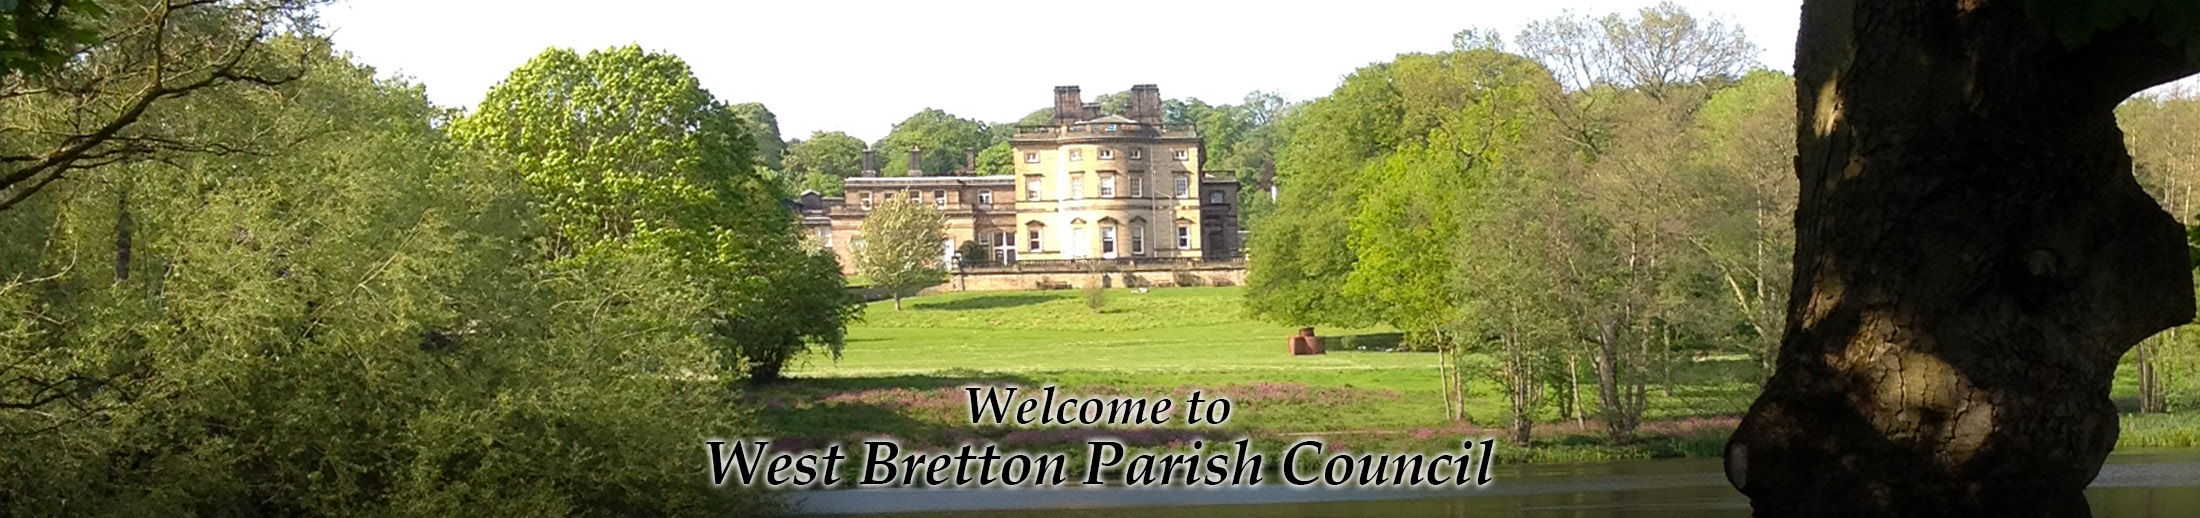 Header Image for West Bretton Parish Council